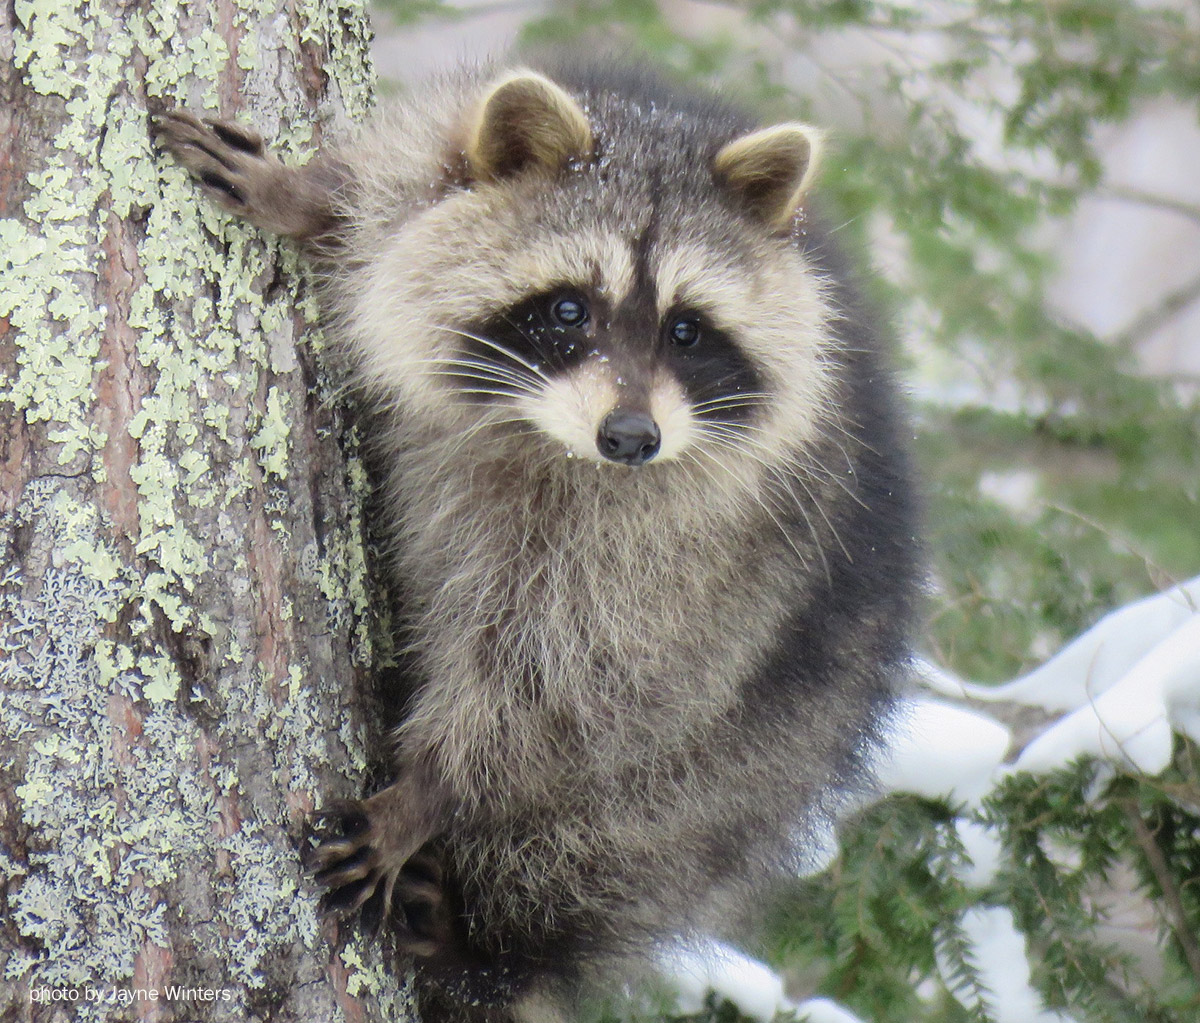 Raccoon photo by Jayne Winters